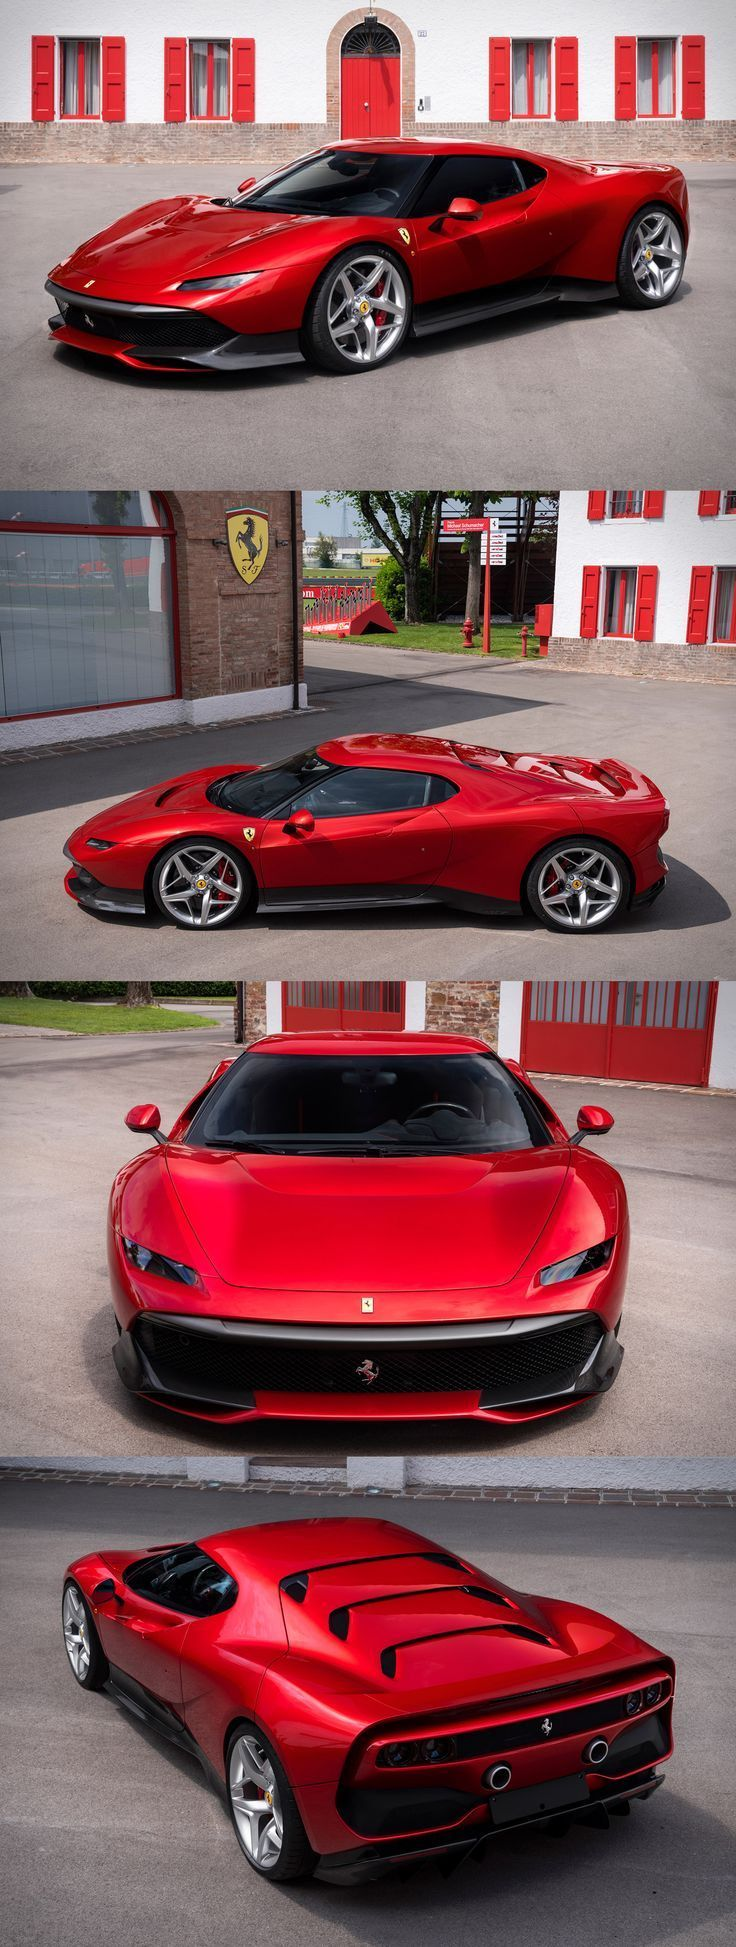 Pay the parking fines of this Ferrari and it can be yours